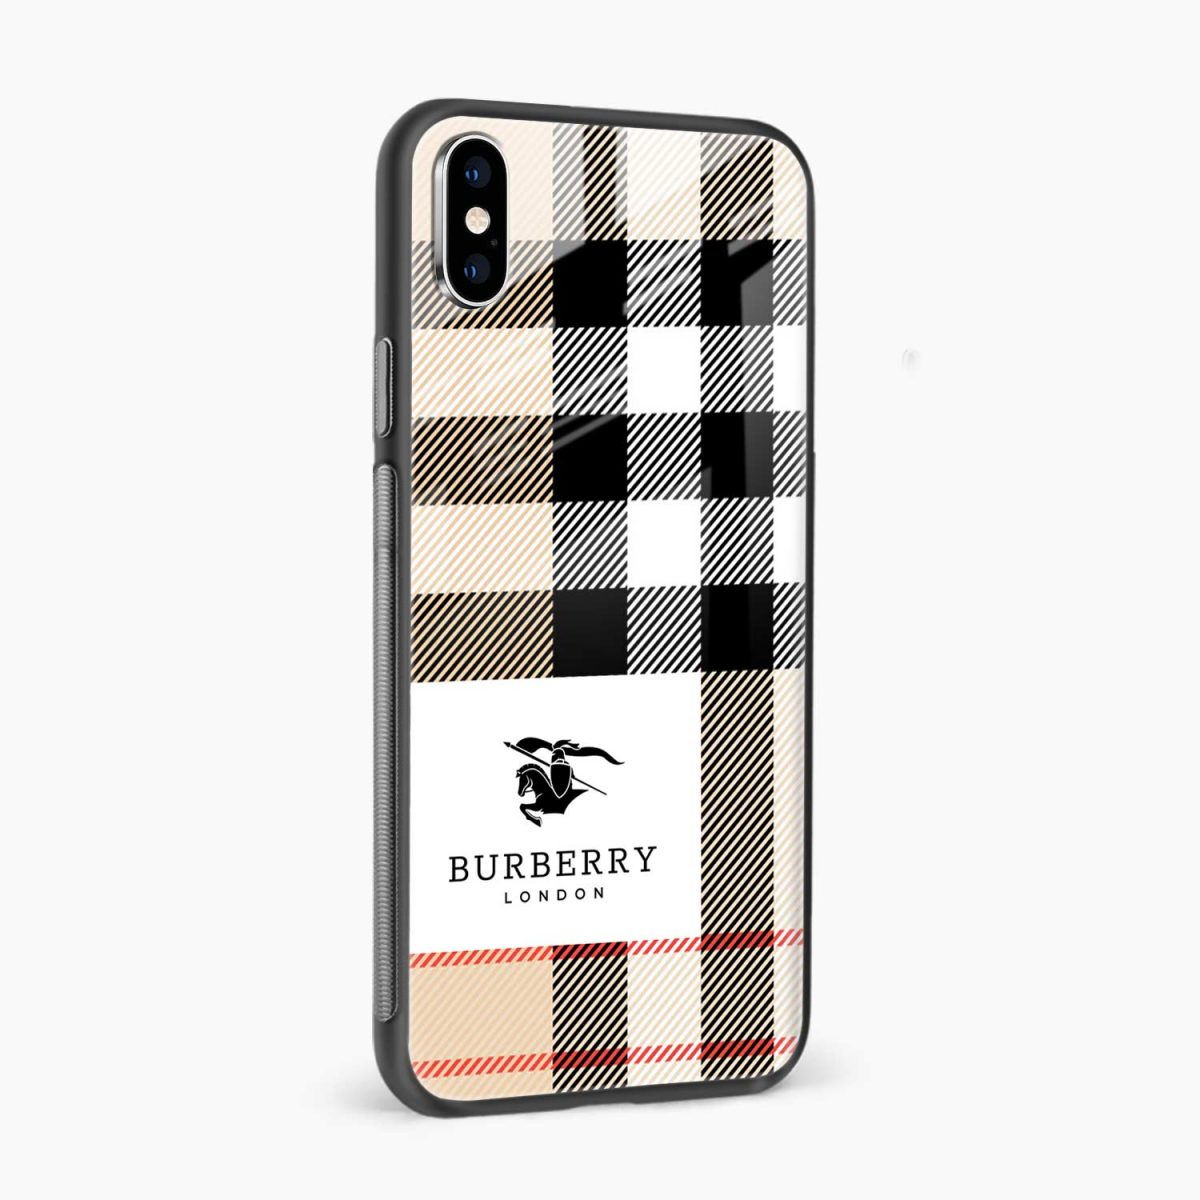 burberry cross lines pattern side view apple iphone x xs max back cover